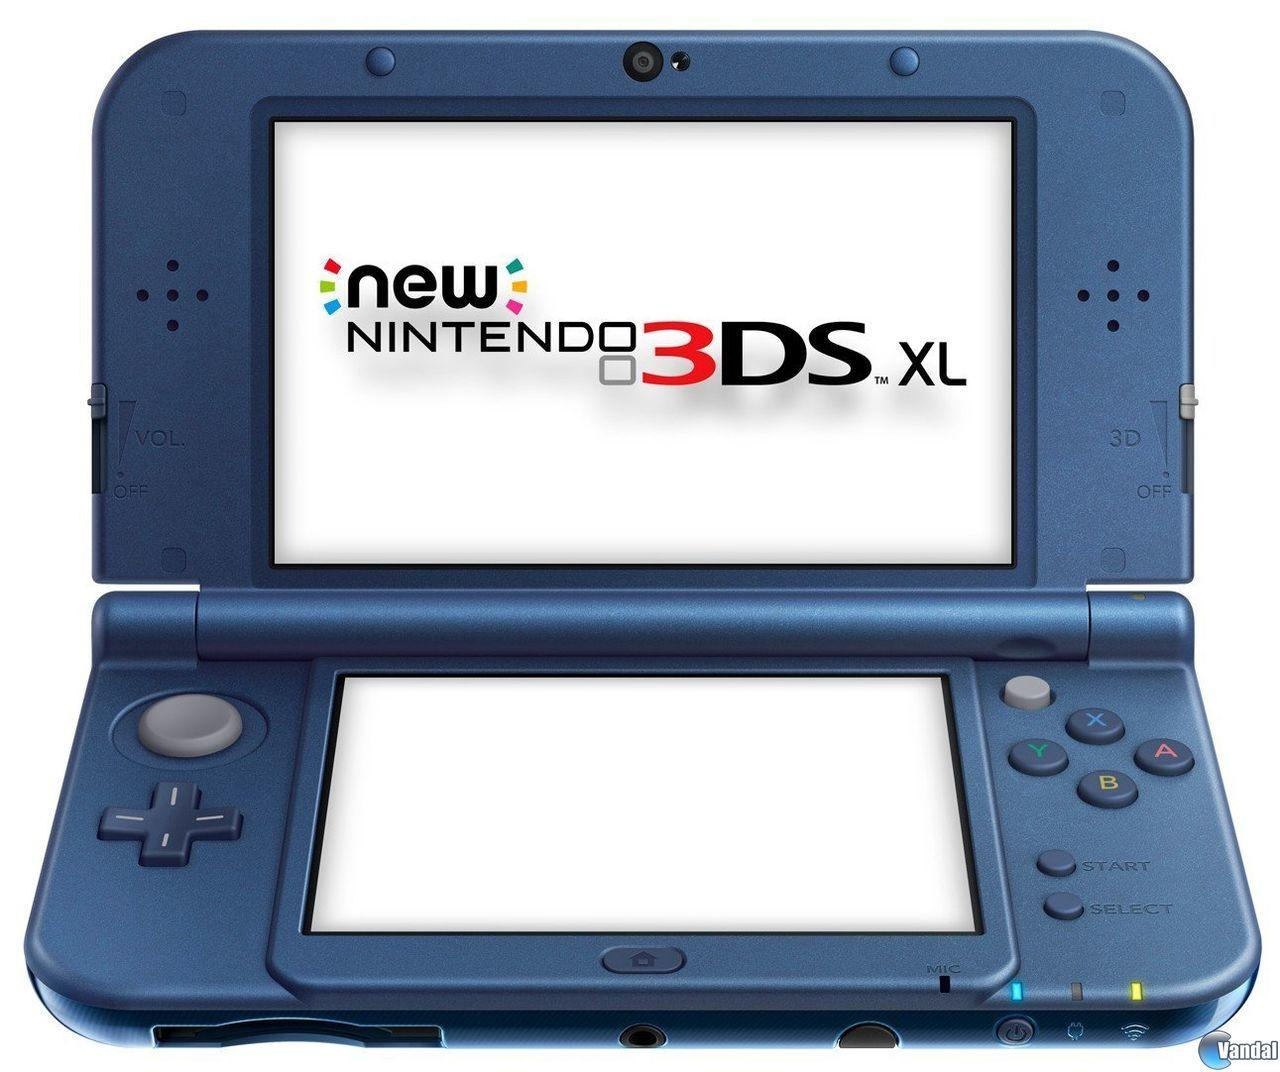 New Nintendo 3DS goes on sale in Japan